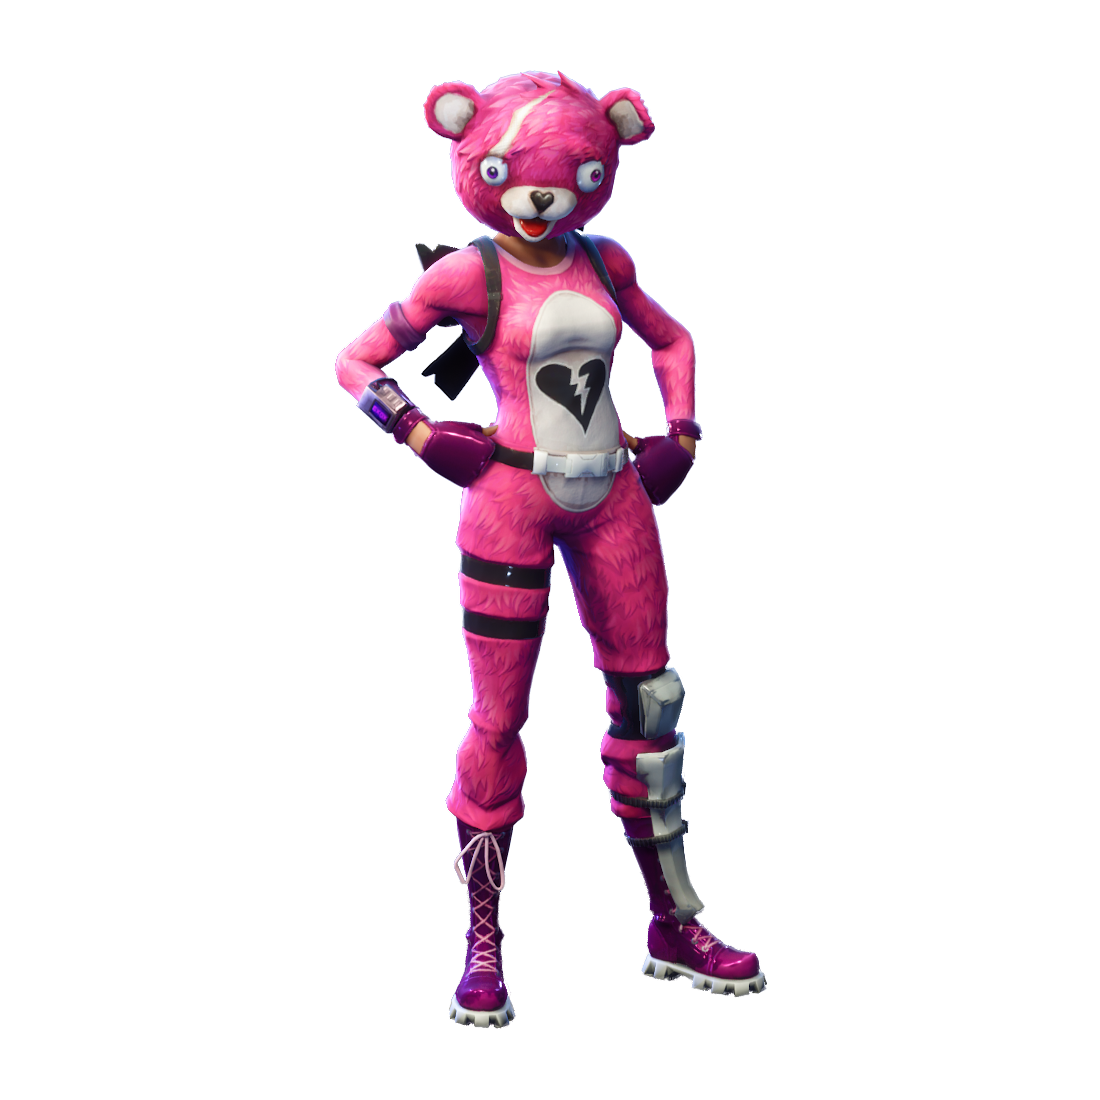 Toy Character Fictional Royale Game Fortnite Battle PNG Image